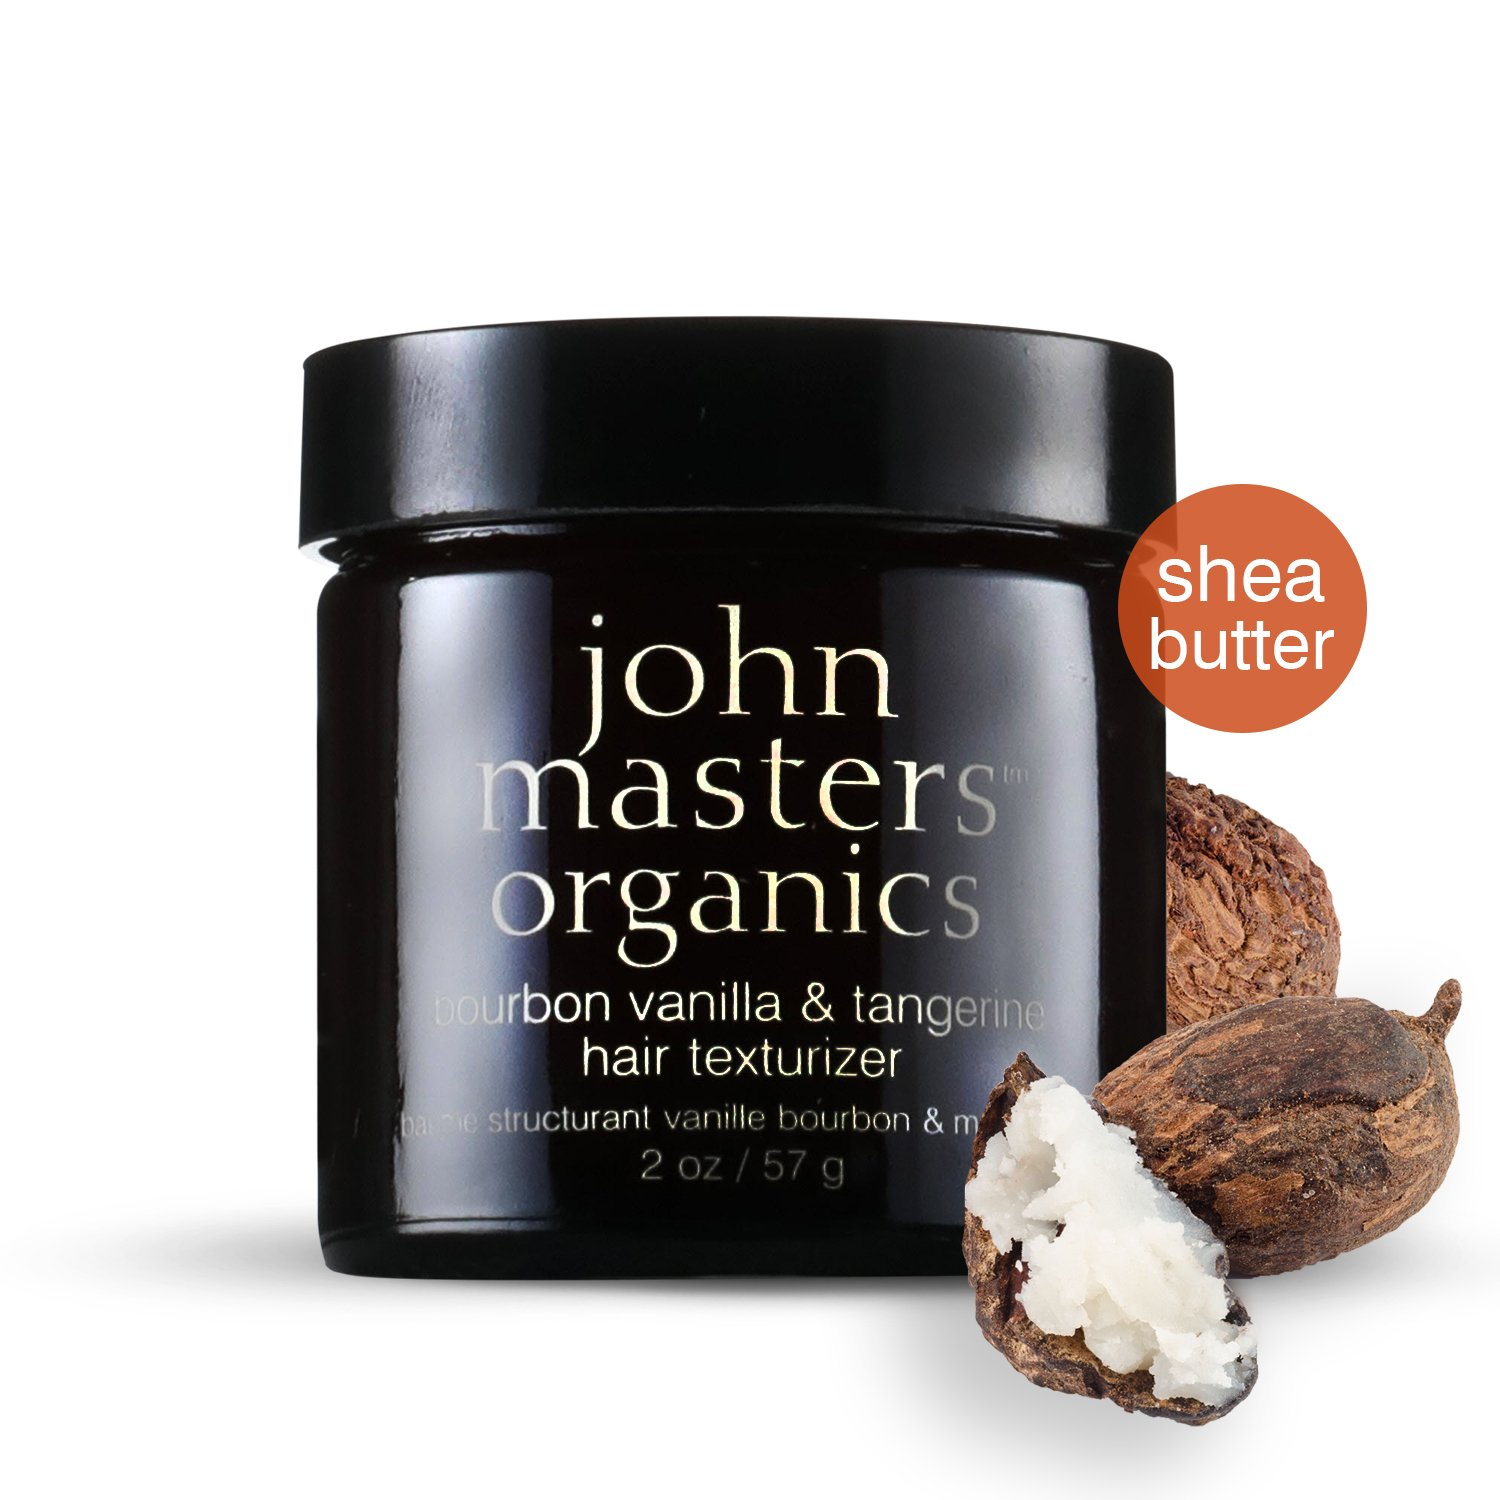 John Masters Organics - Bourbon Vanilla & Tangerine Hair Texturizer - All Natural Styling Product for Men & Women, Moisturize, Add Shine, Texture - Extra Strong Hold - 2 oz